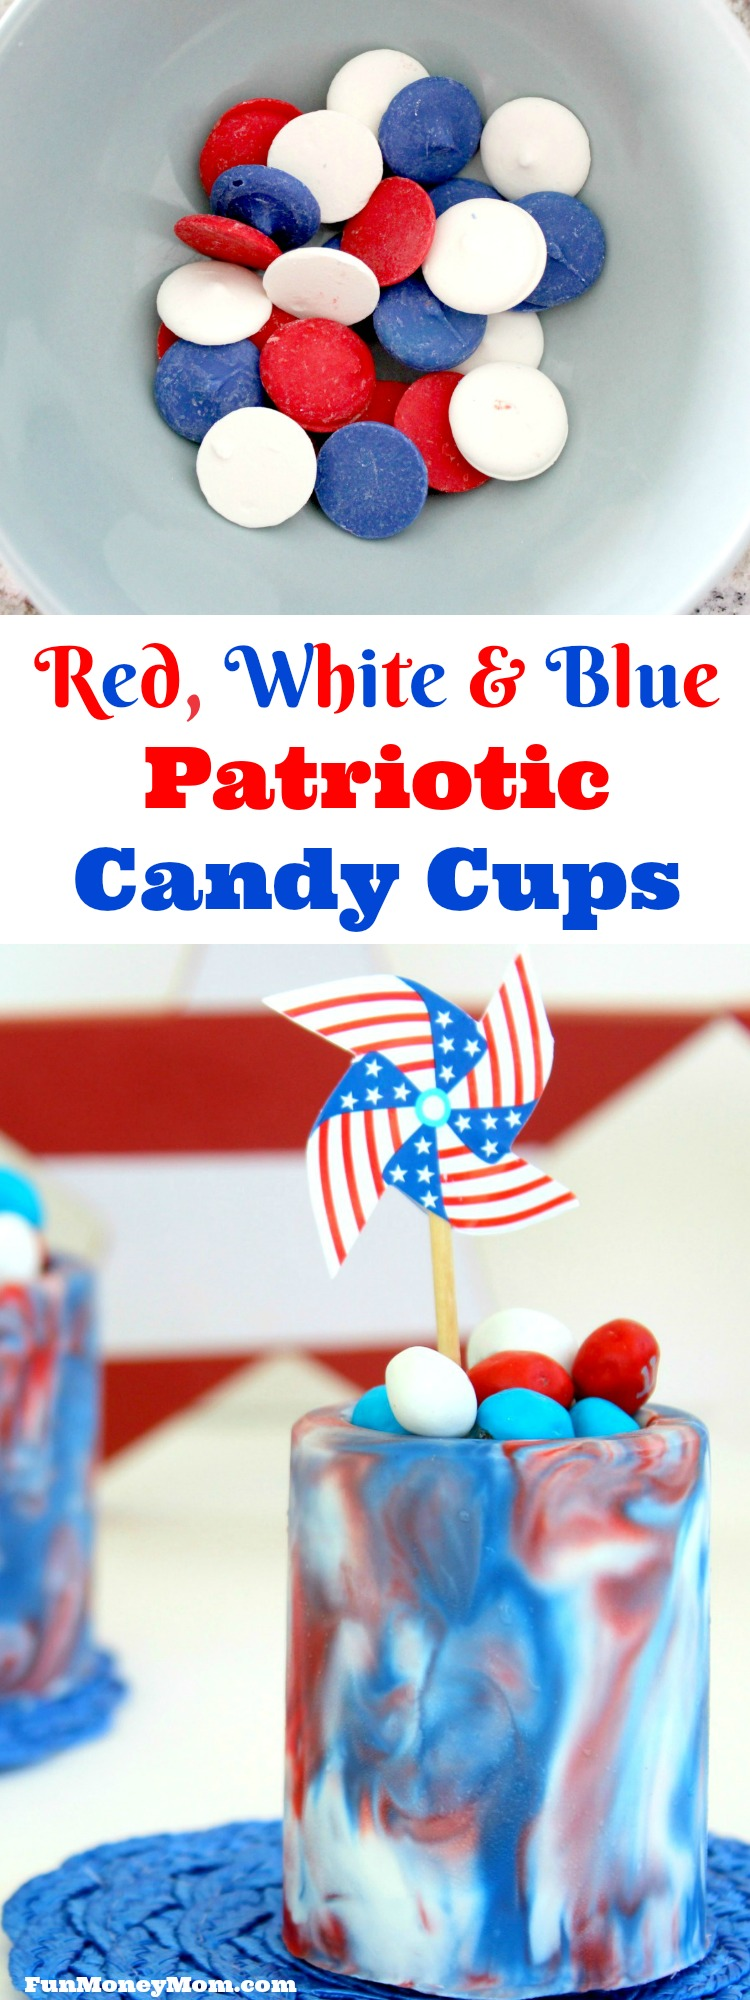 Red white and blue dessert cups